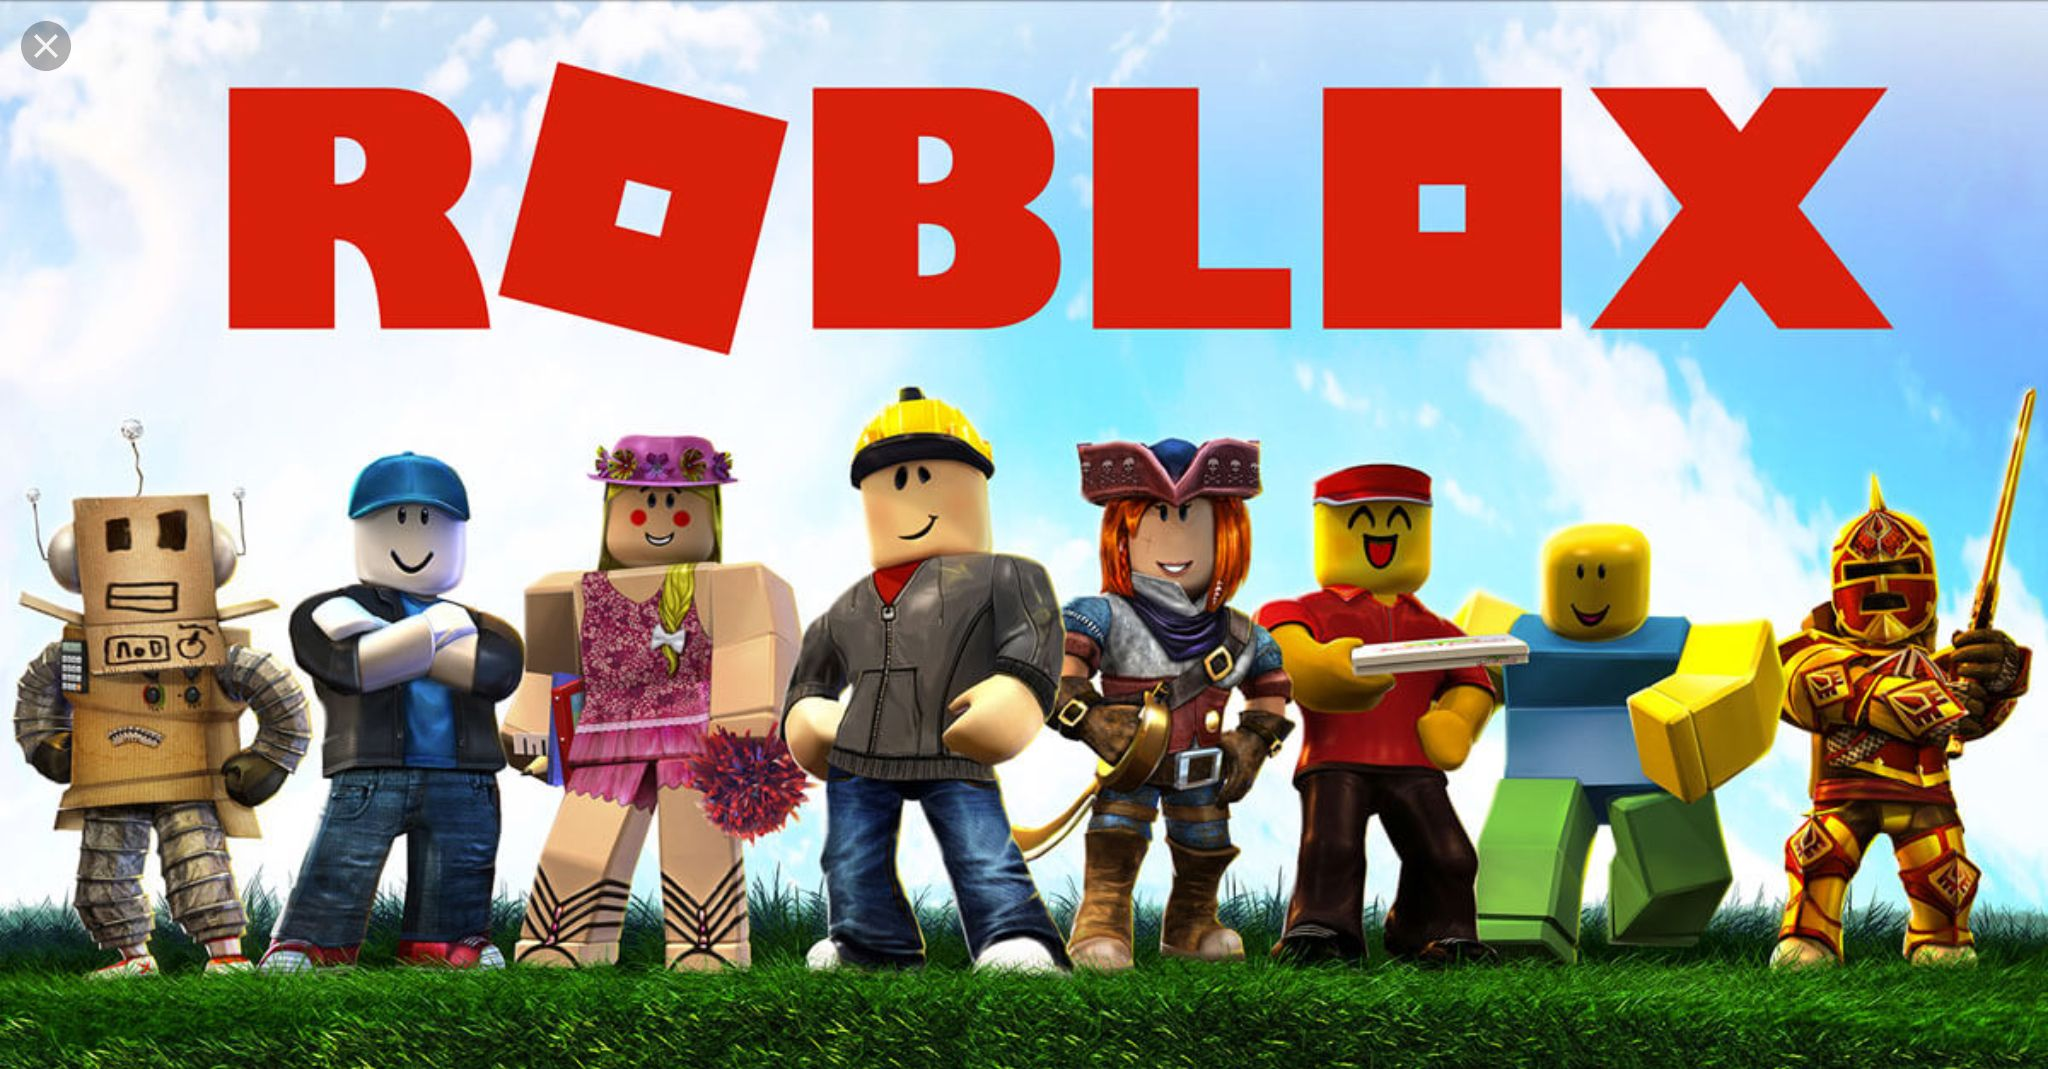 Roblox Characters Wallpapers Wallpaper Cave